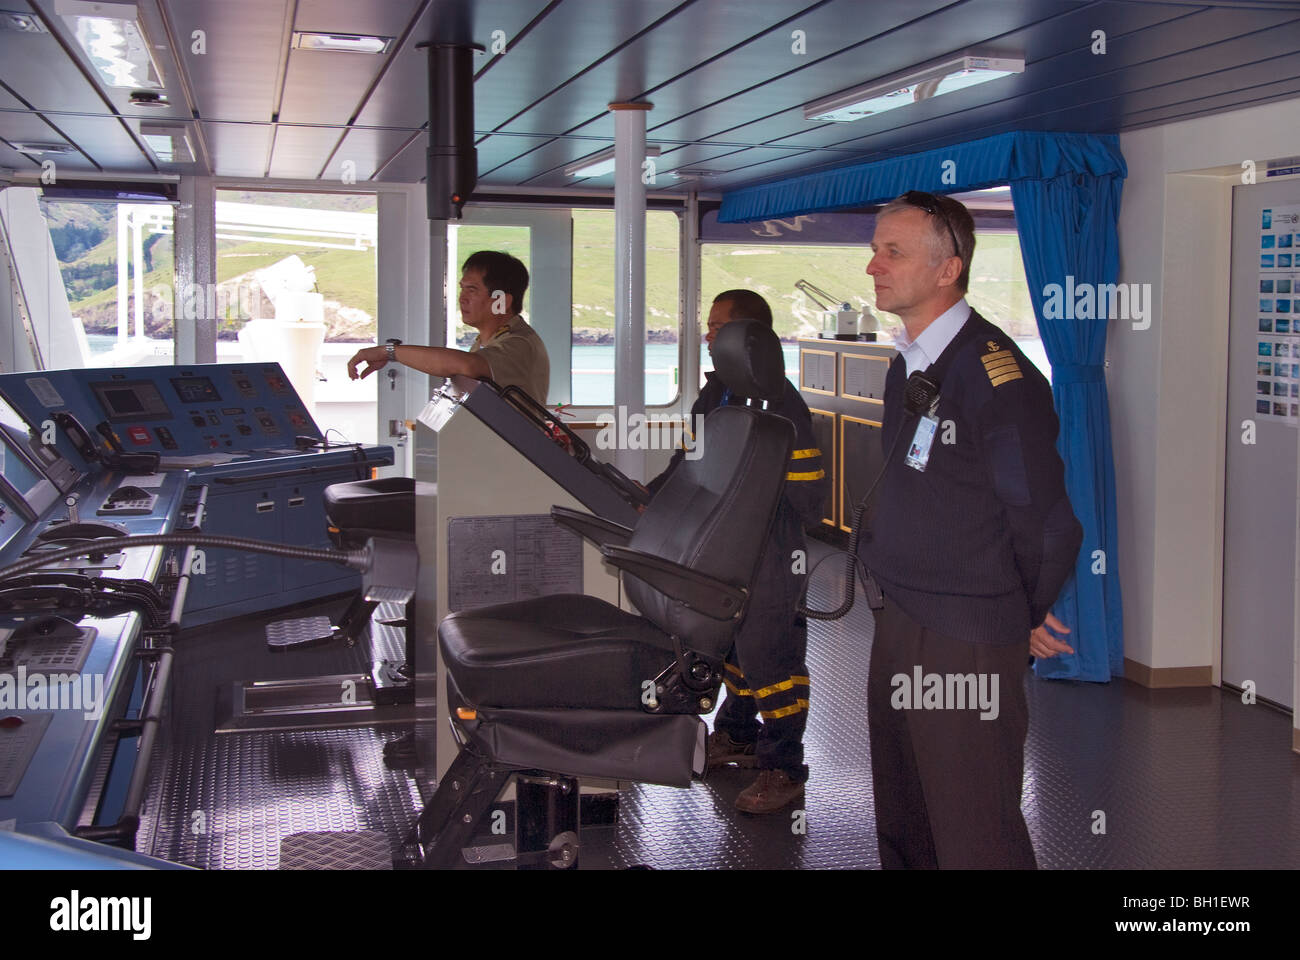 Captain and crew members on a ship's bridge as it approaches port - Stock Image